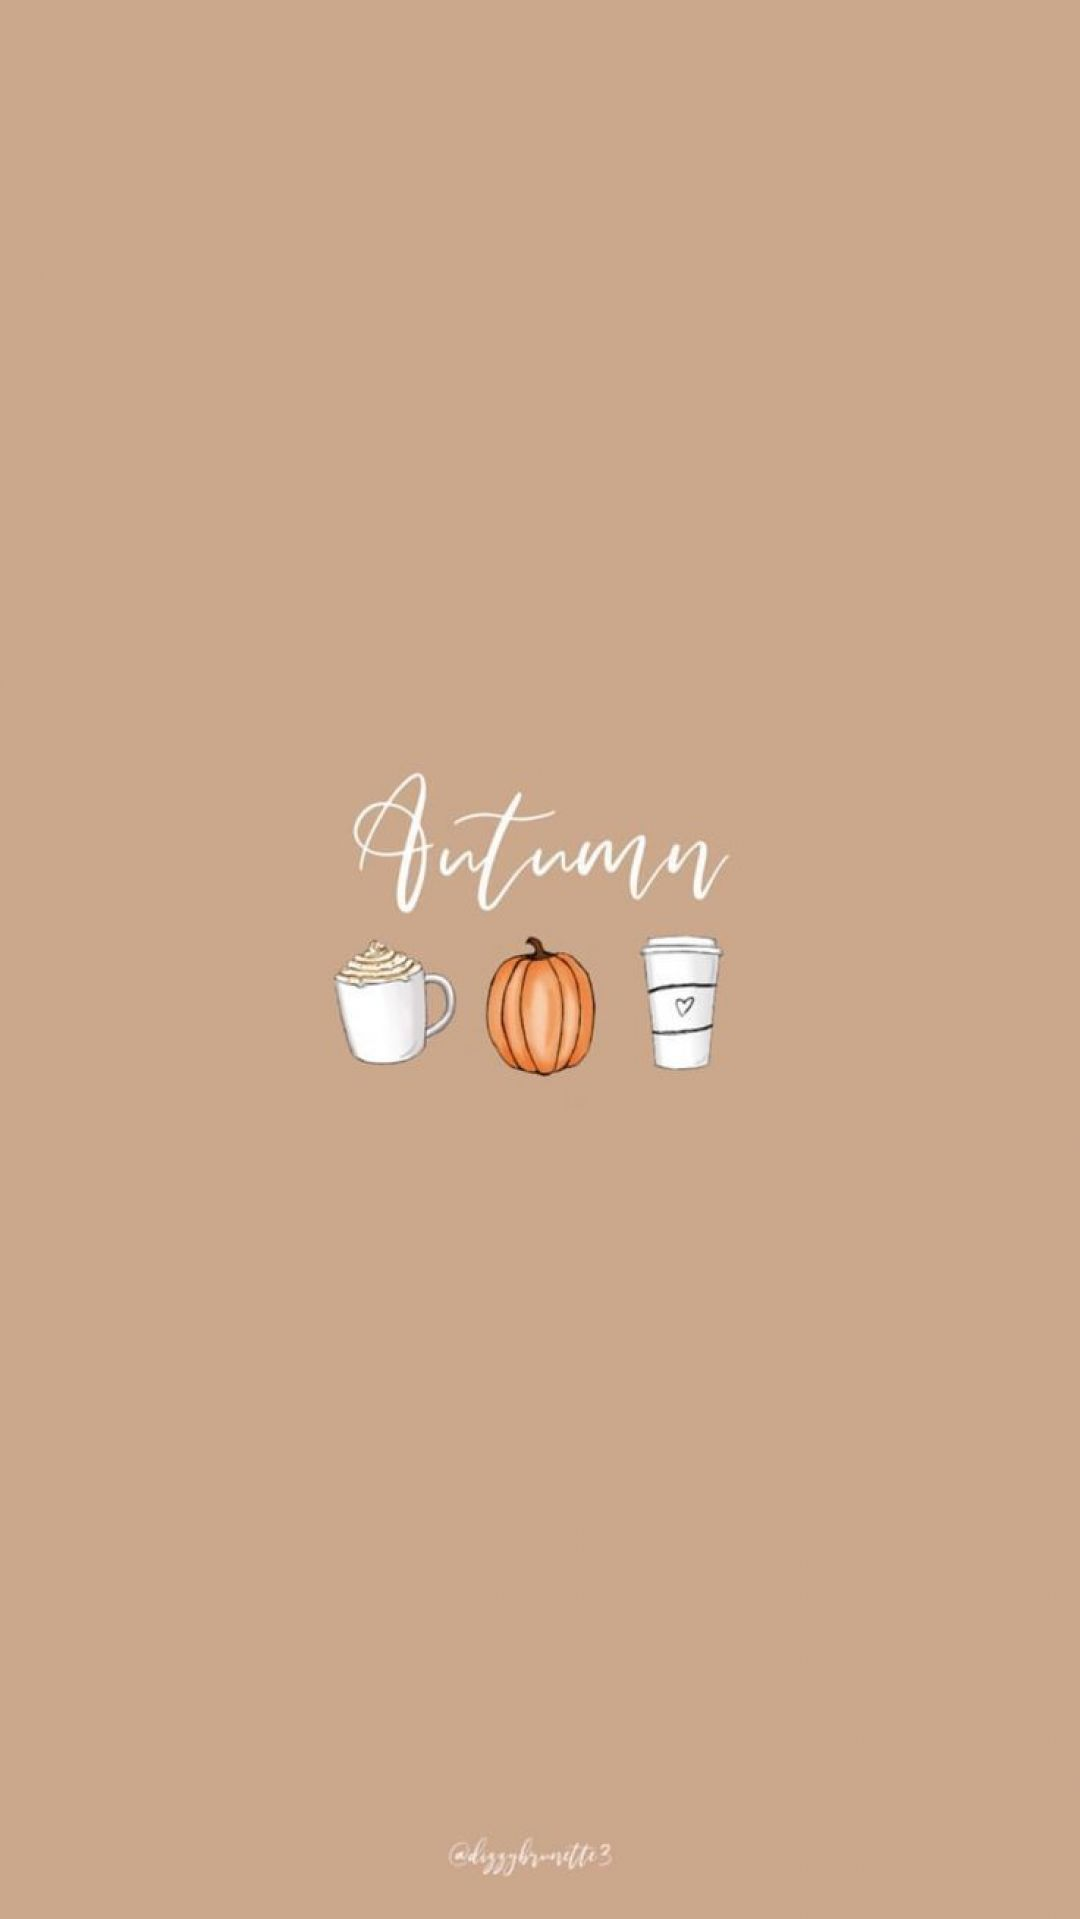 hello autumn aesthetichd wallpapers desktop background android iphone 1080p 4k tu2o0